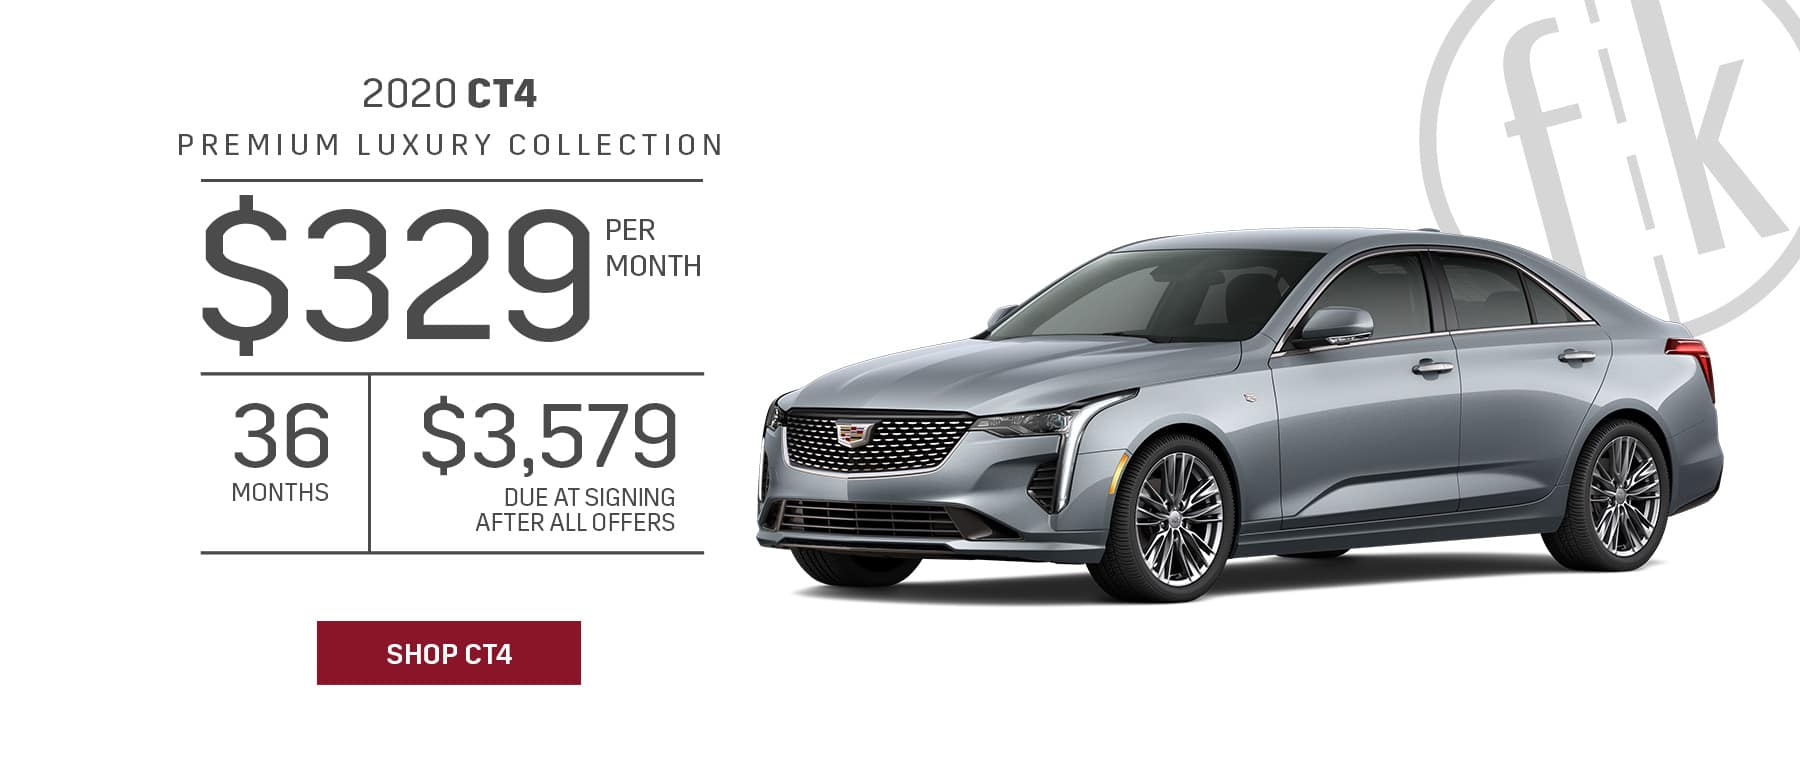 2020 CT4 1SD Premium Luxury RWD $329/mo for 36 mos. with $3,579 DAS